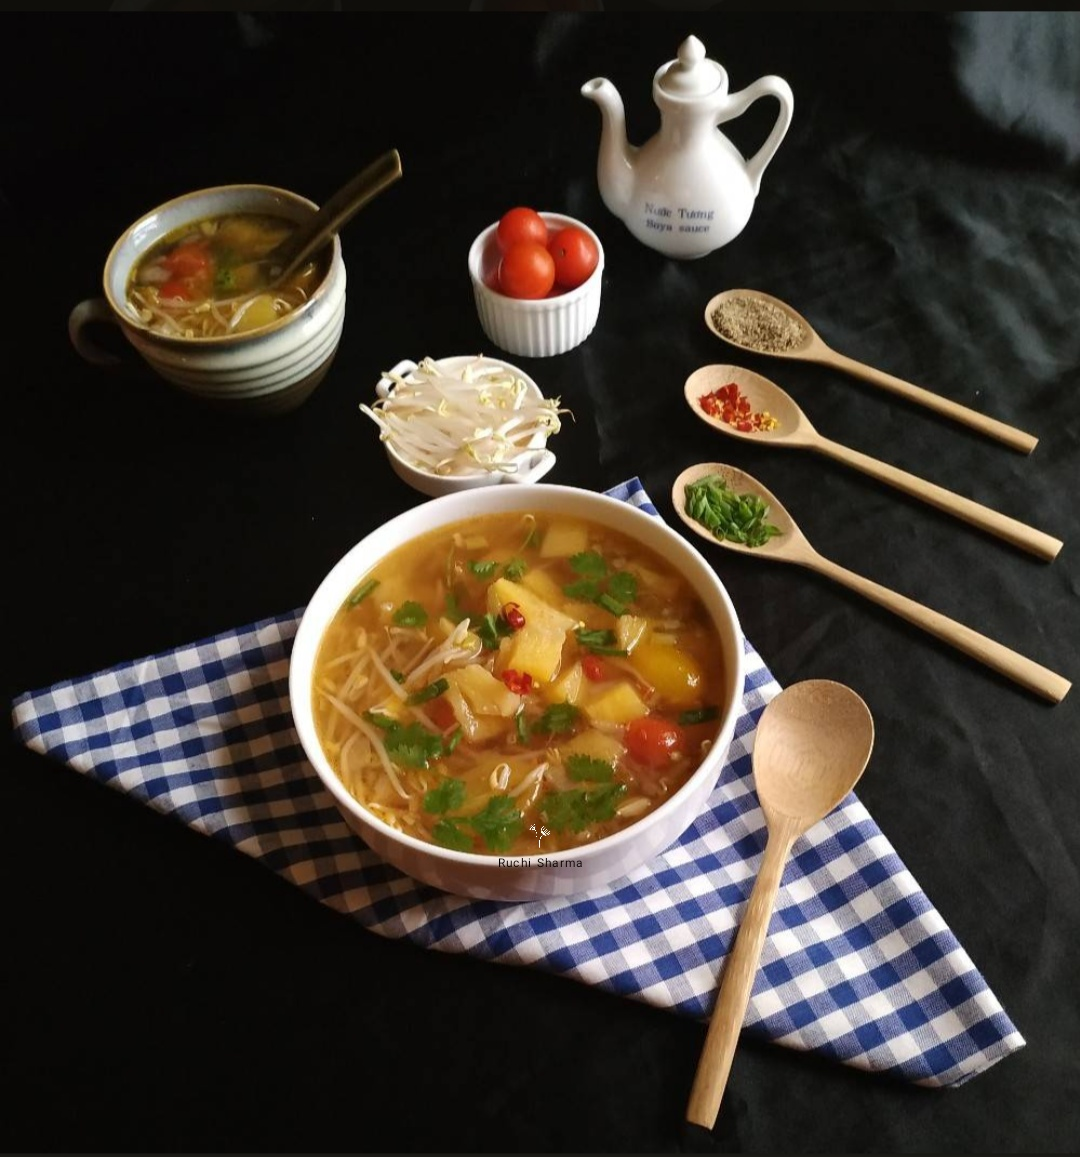 Pineapple and bean sprouts soup